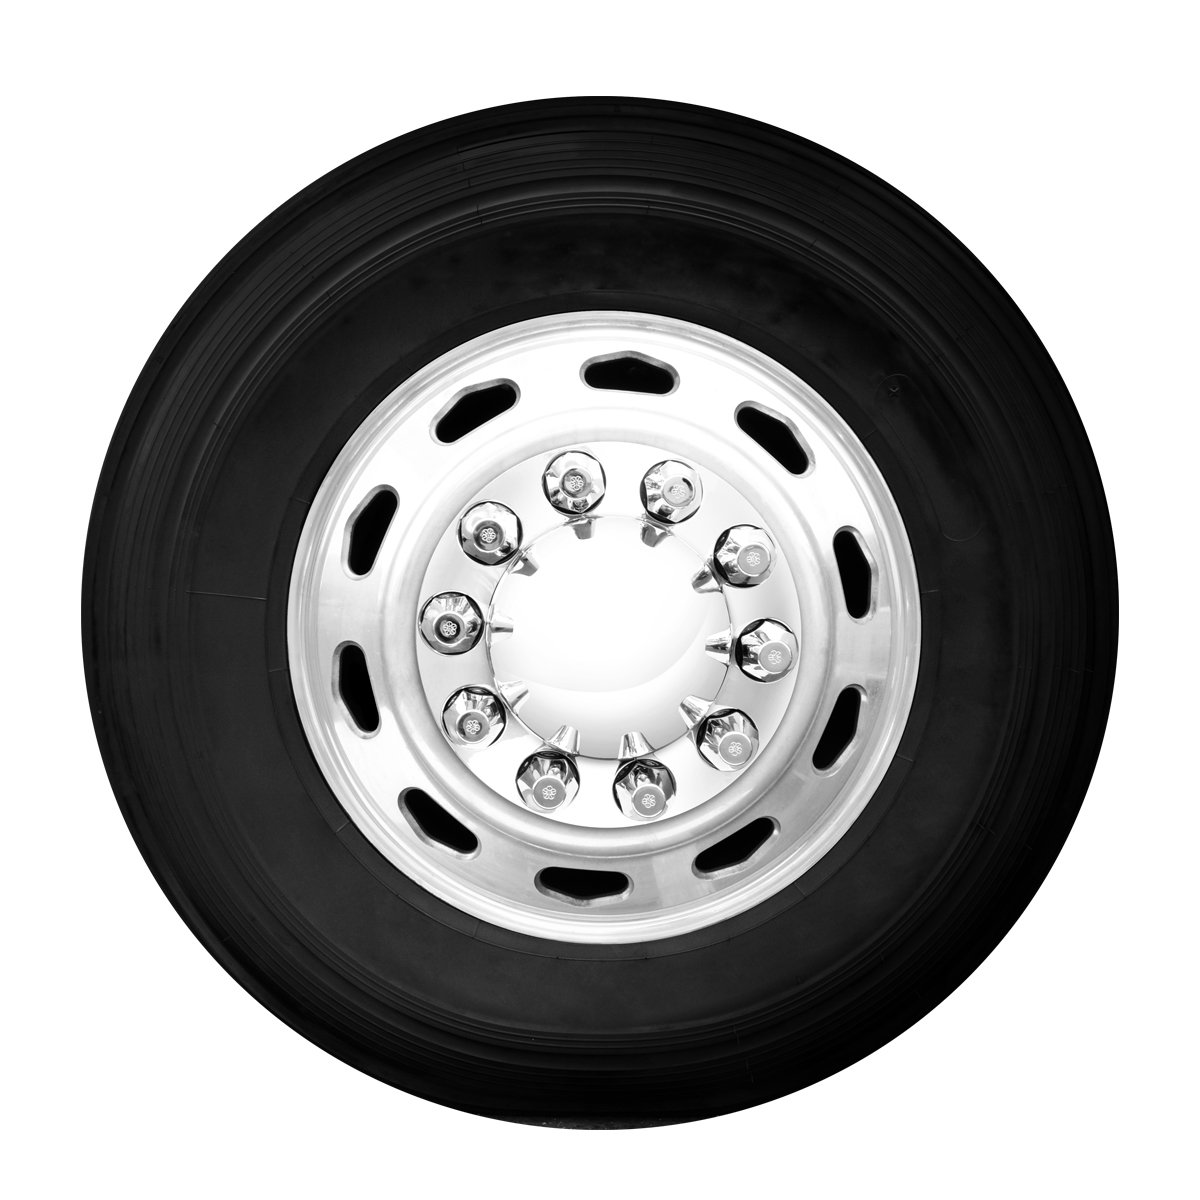 Grand General 40230 Chrome Plastic Complete ABS Axle Cover Set 2 Front and 4 Rear with Standard Hub Caps and Screw-On 33mm Lug Nut Covers for Trucks